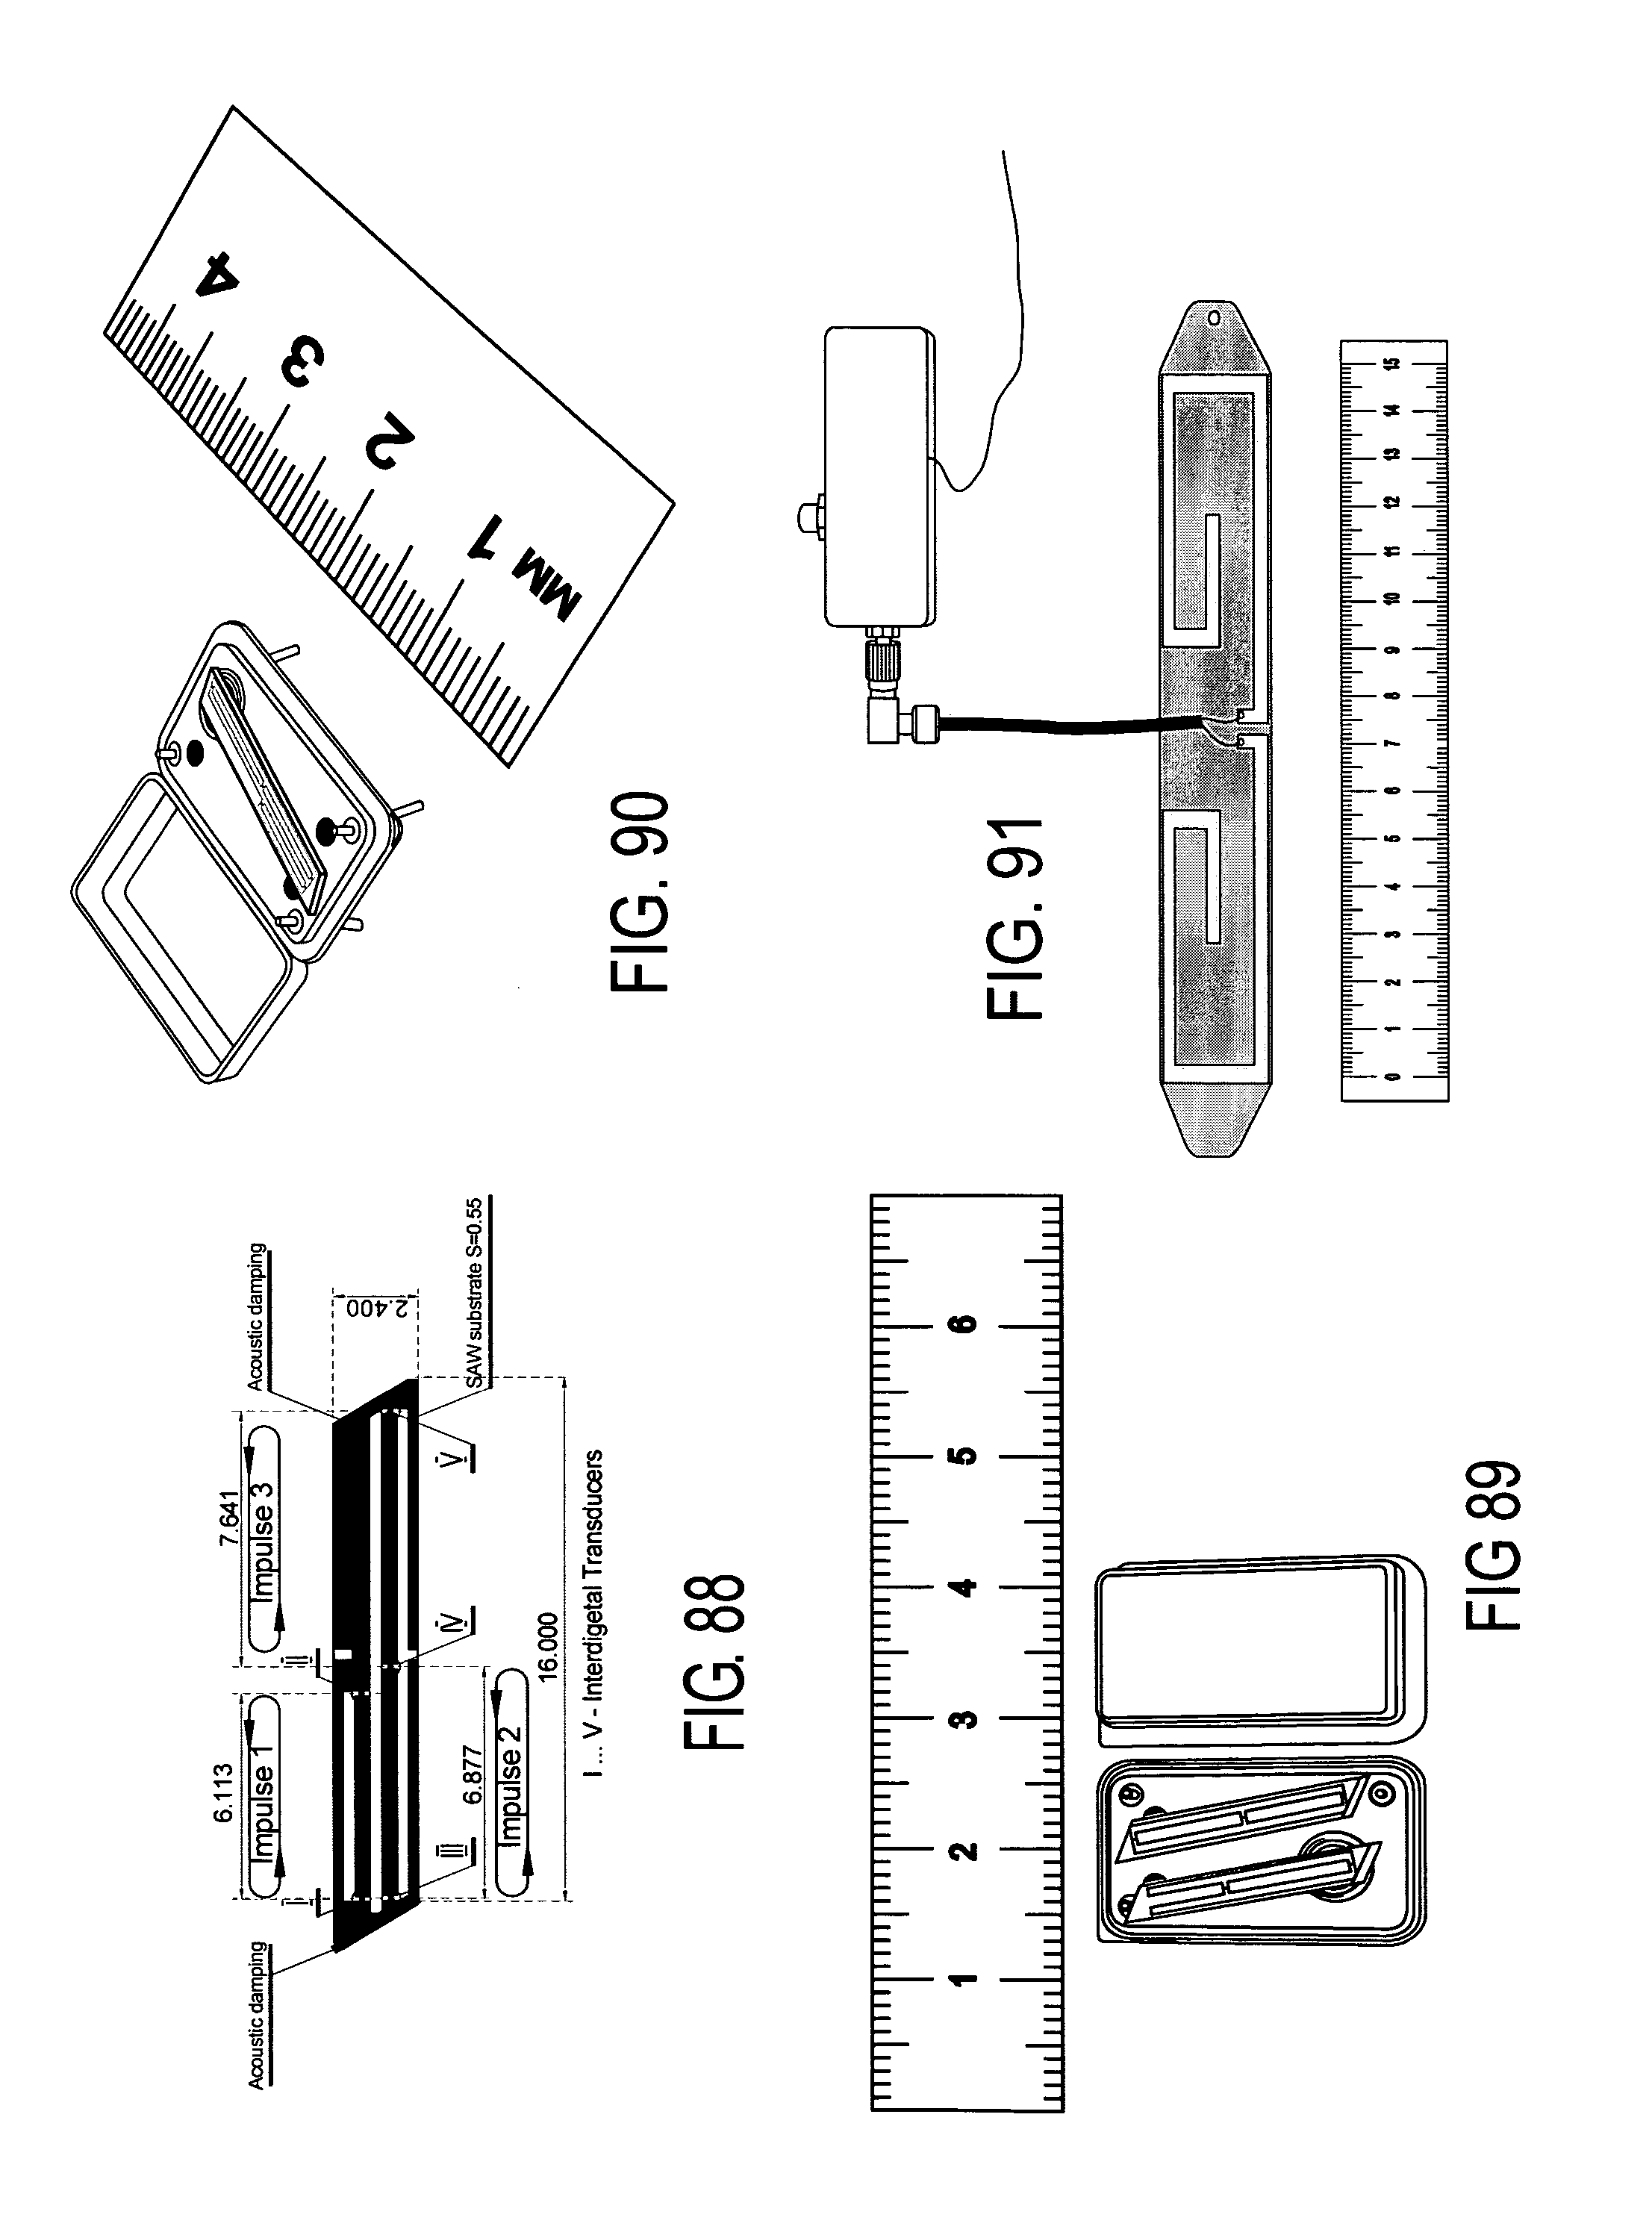 Patent Us 7421321 B2 It Diagram 2 Automatic Street Light Control Systemsensor Using Ldr Images